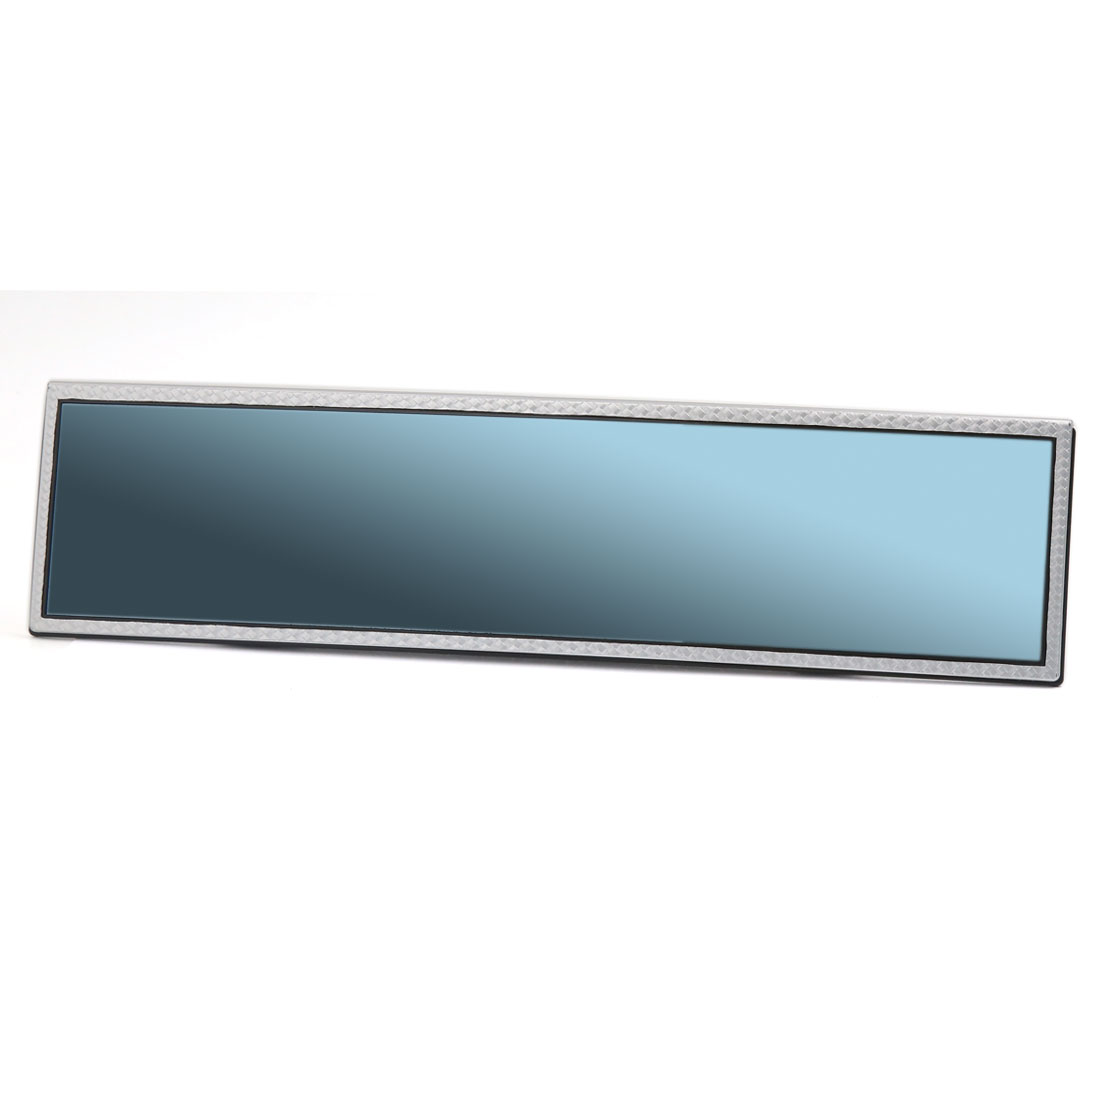 308mm Wide Blue Glass Convex Clip On Car Truck Interior Assist Rear View Rearview Mirror